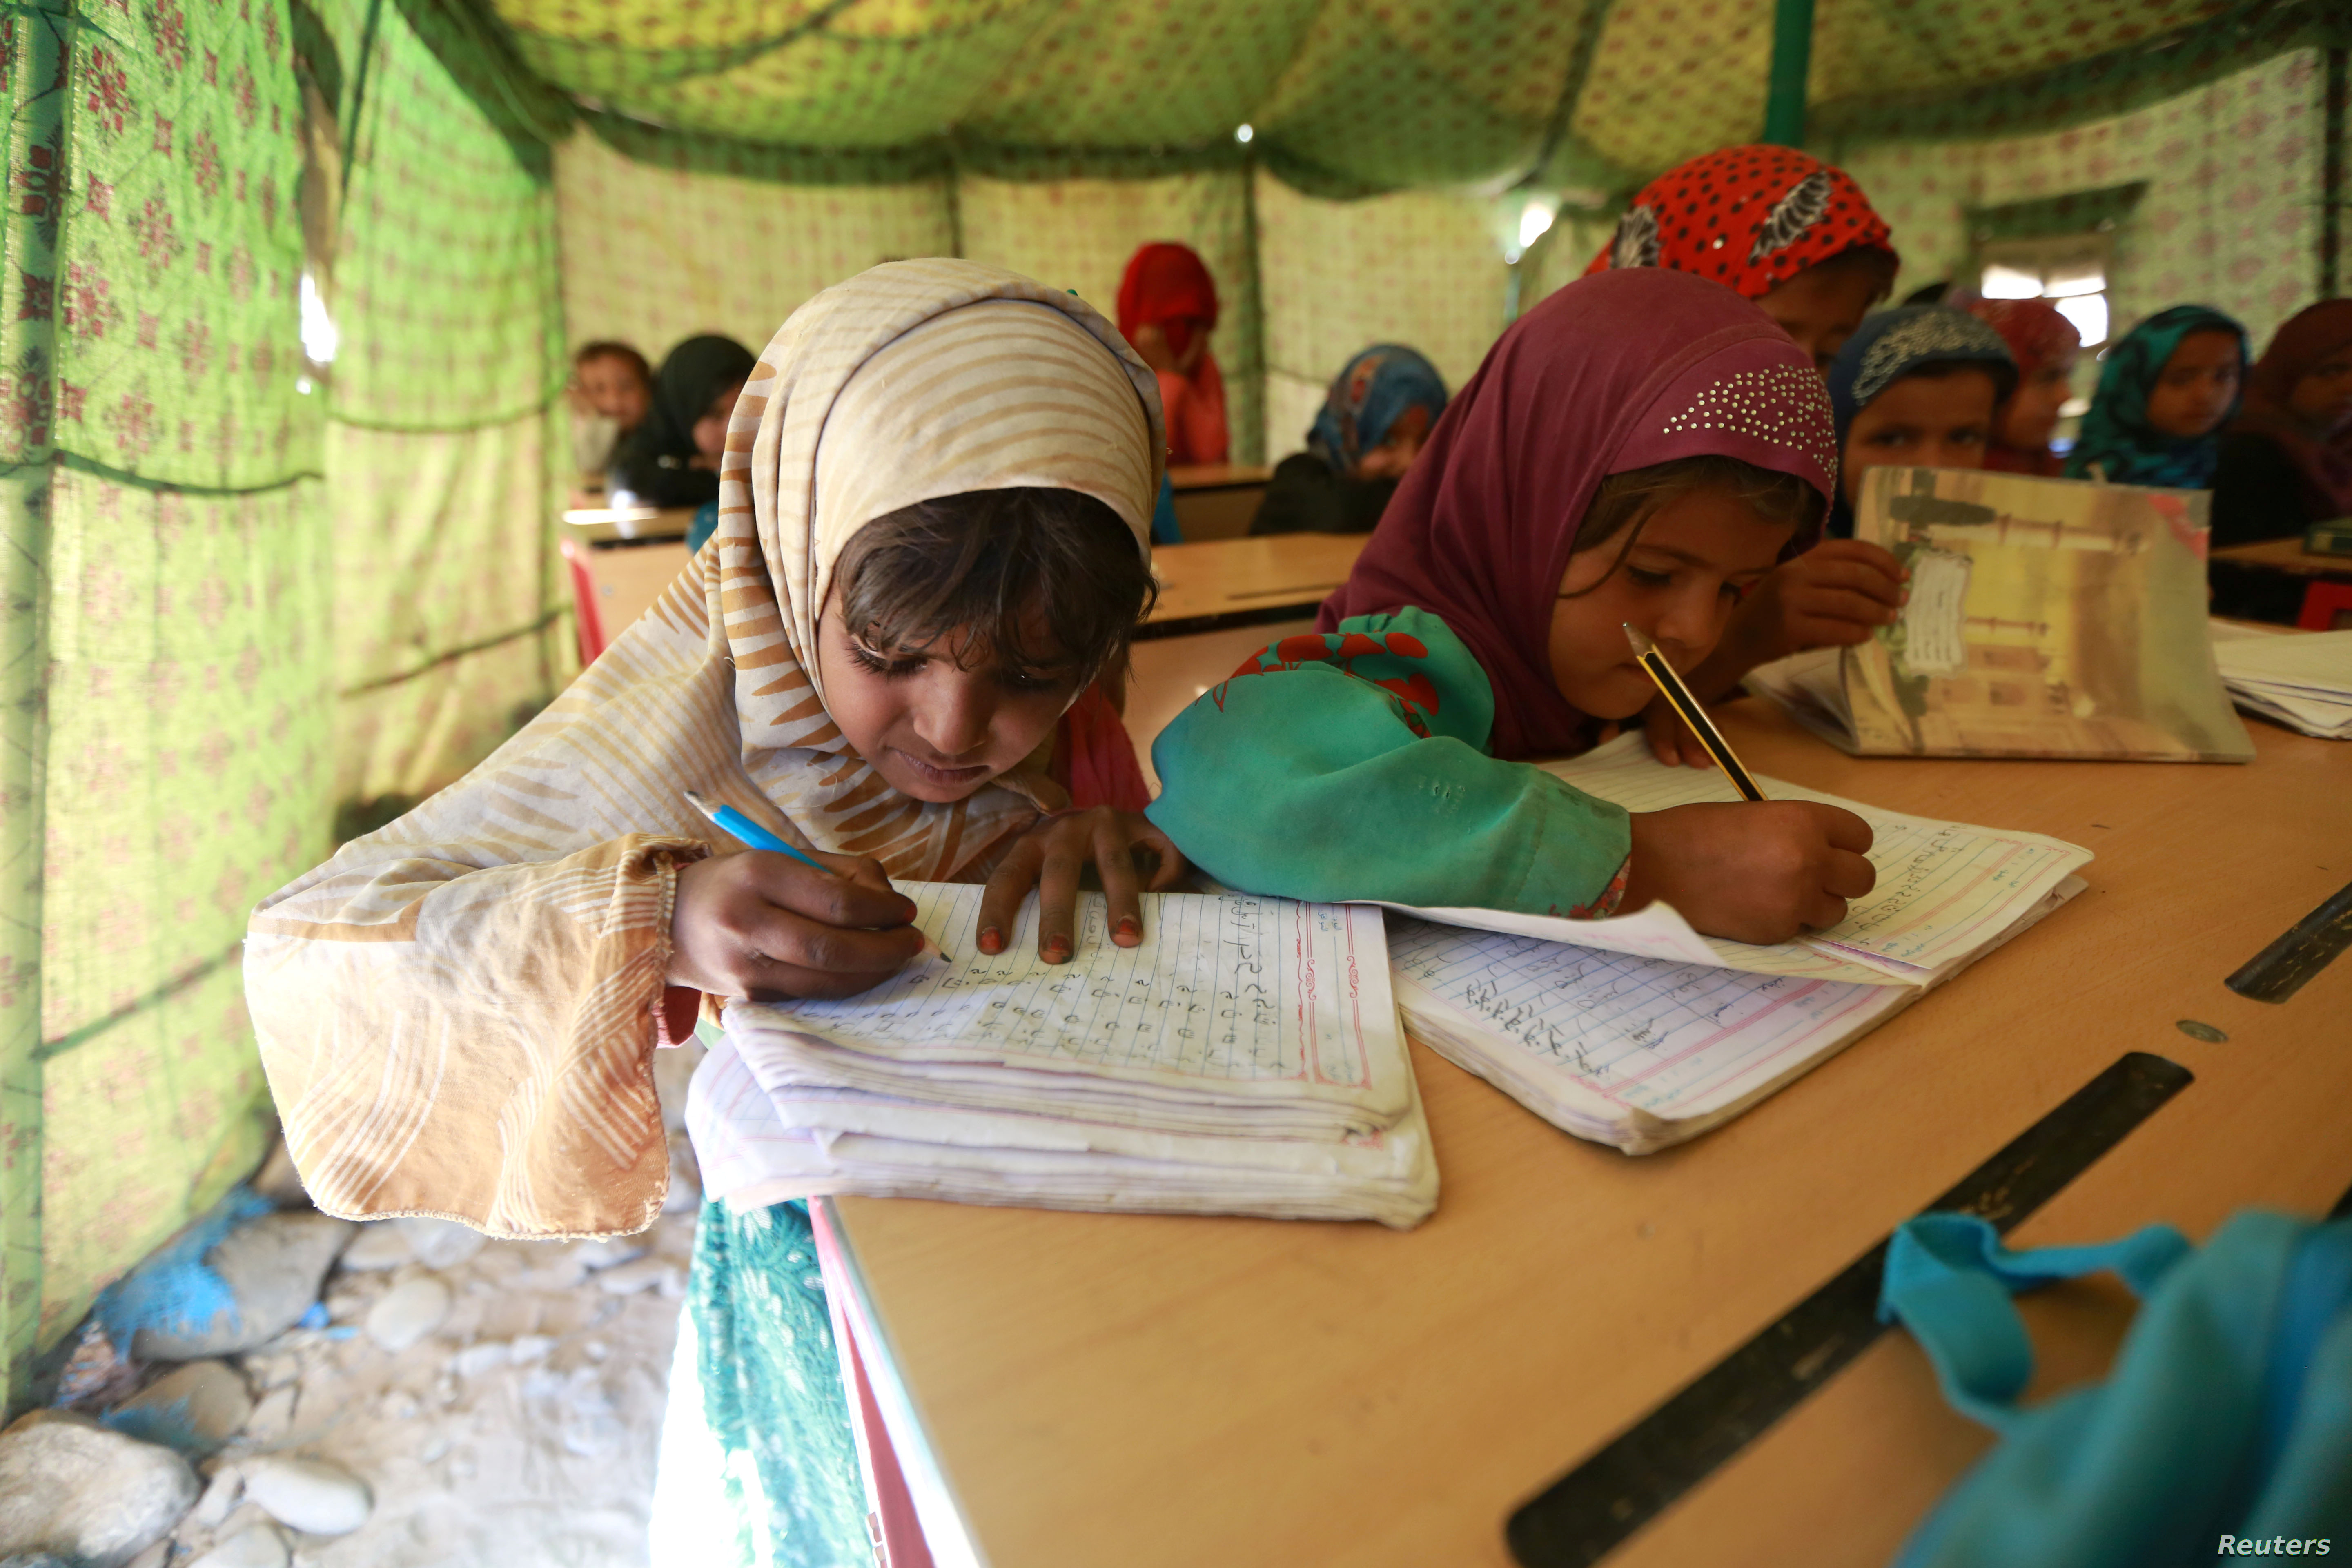 Displaced Yemeni students attend a class in a tent at a refugee camp located between Marib and Sanaa, Yemen, March 29, 2018.